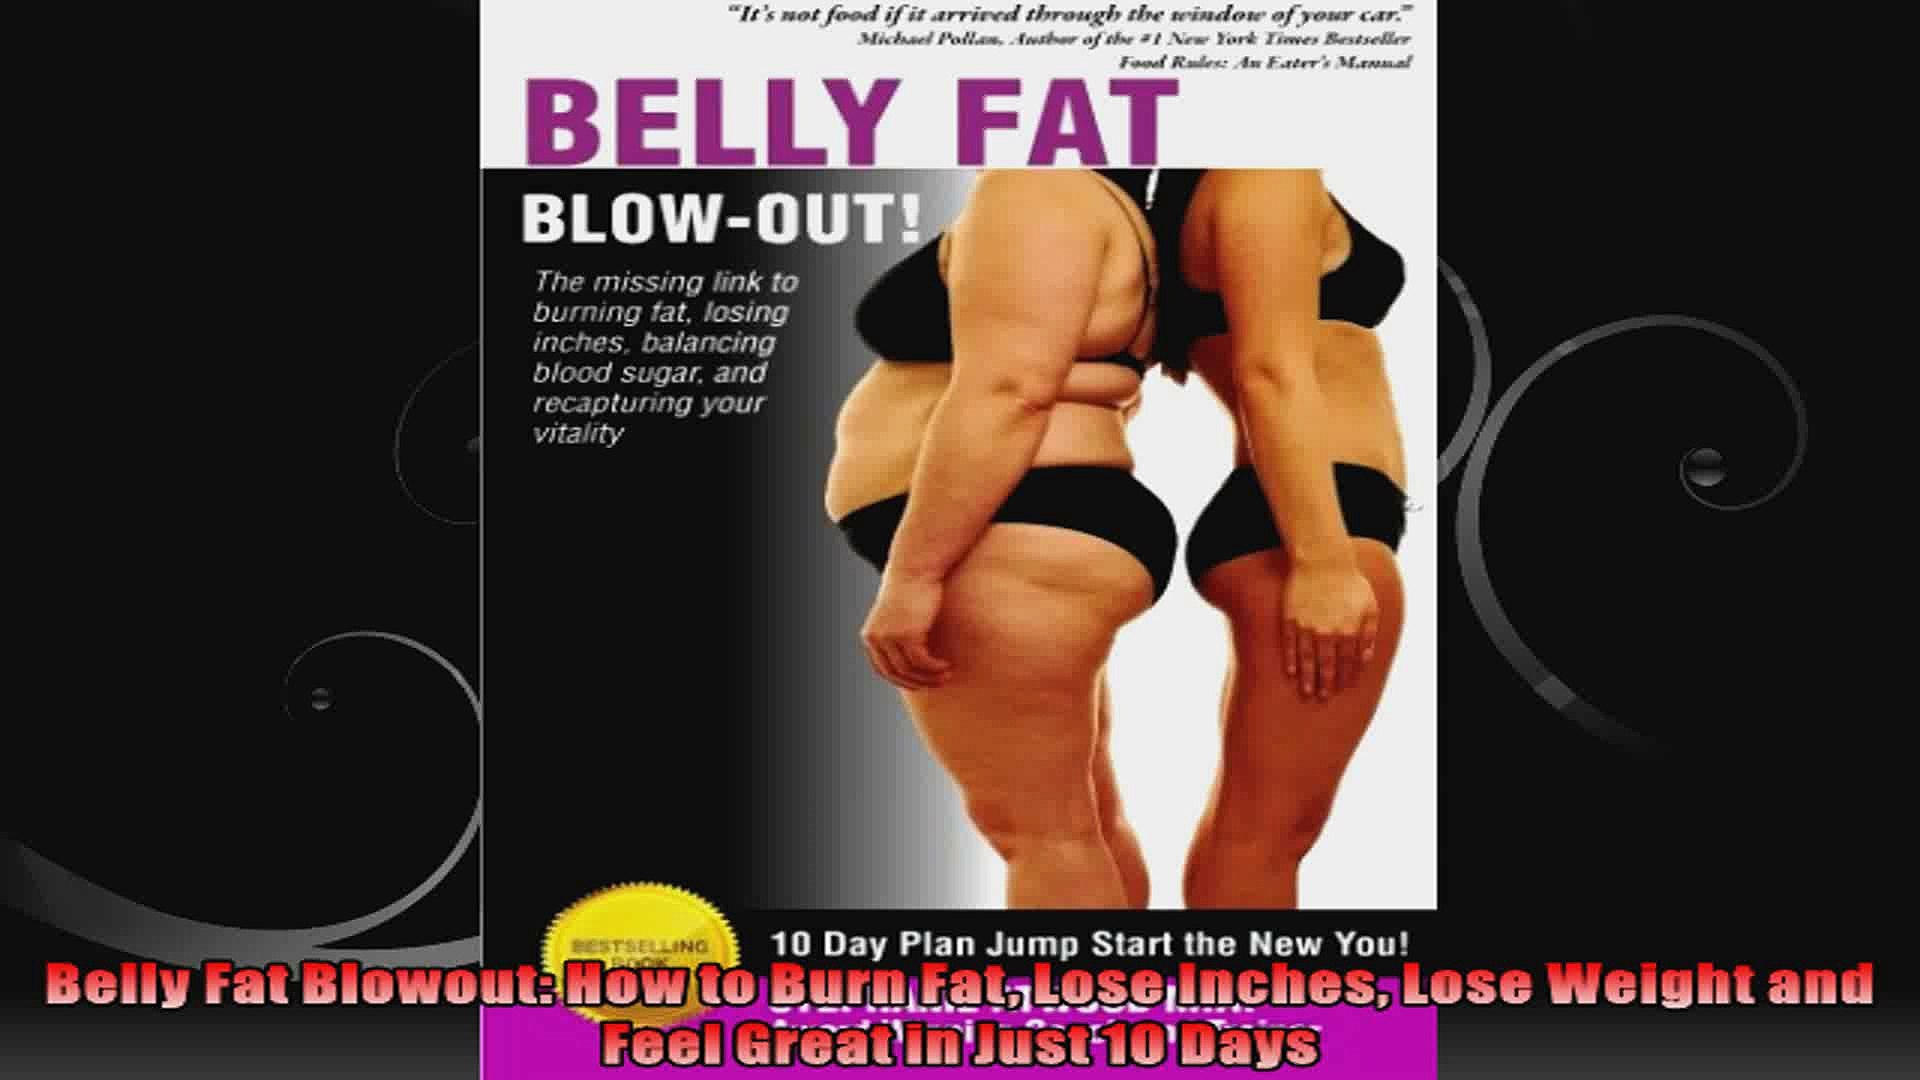 Belly Fat Blowout How To Burn Fat Lose Inches Lose Weight And Feel Great In Just 10 Days Video Dailymotion